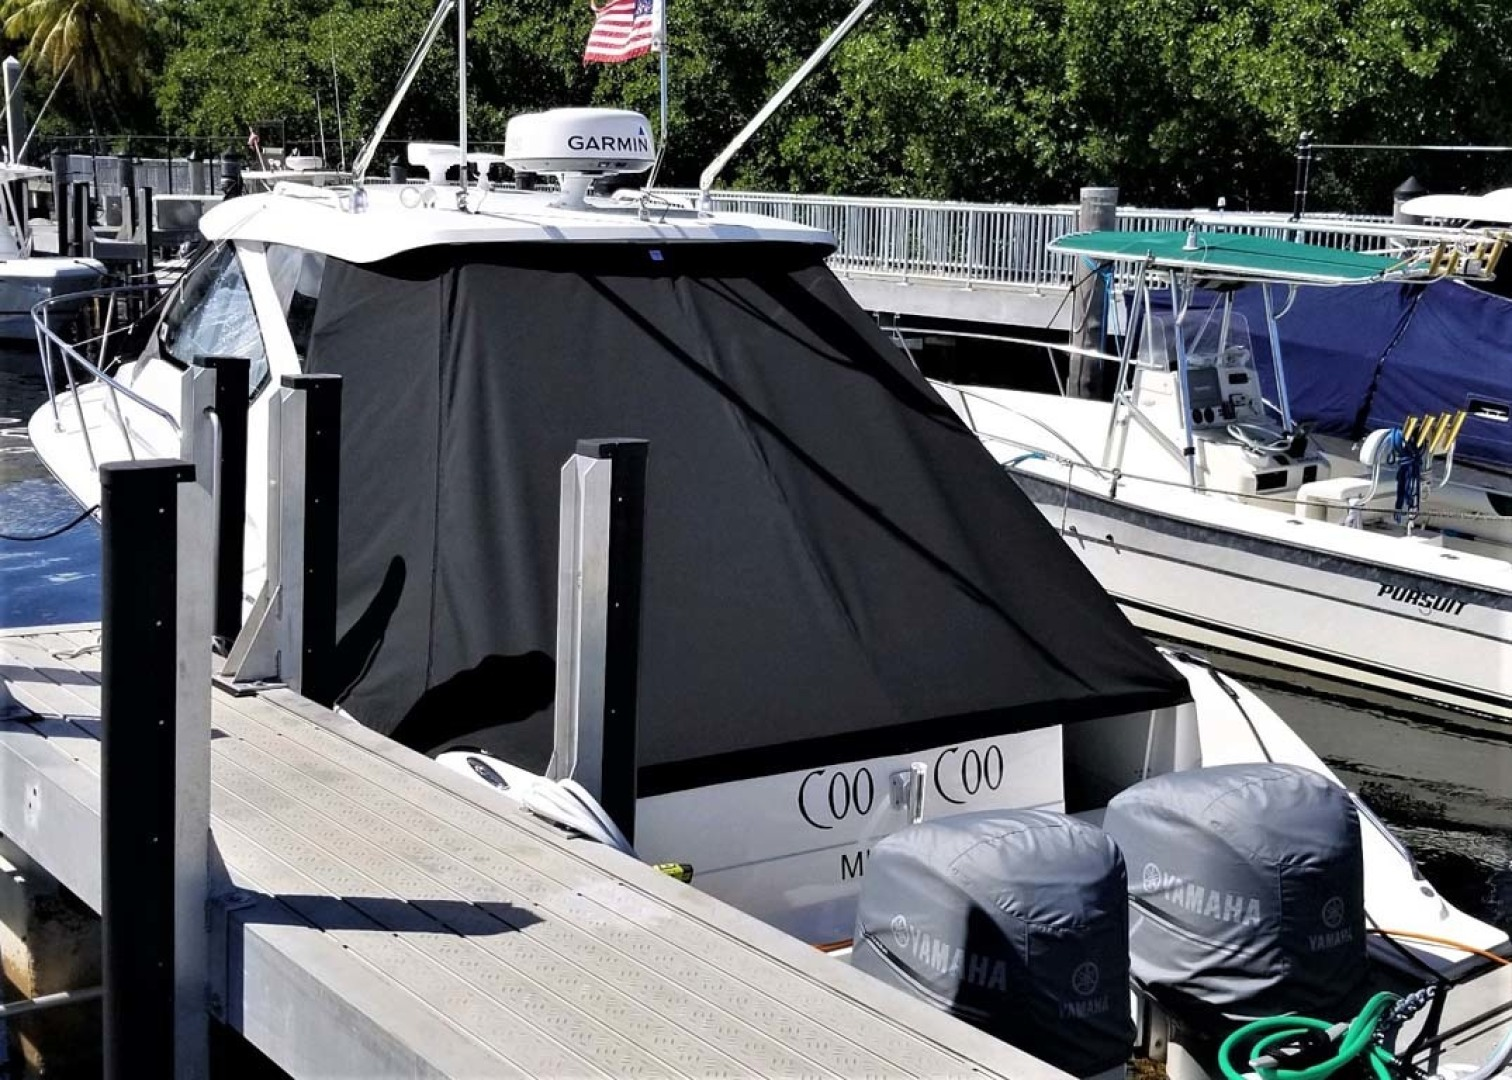 Pursuit-325 Offshore 2020-Coo Coo Miami-Florida-United States-Cockpit Cover-1475310 | Thumbnail